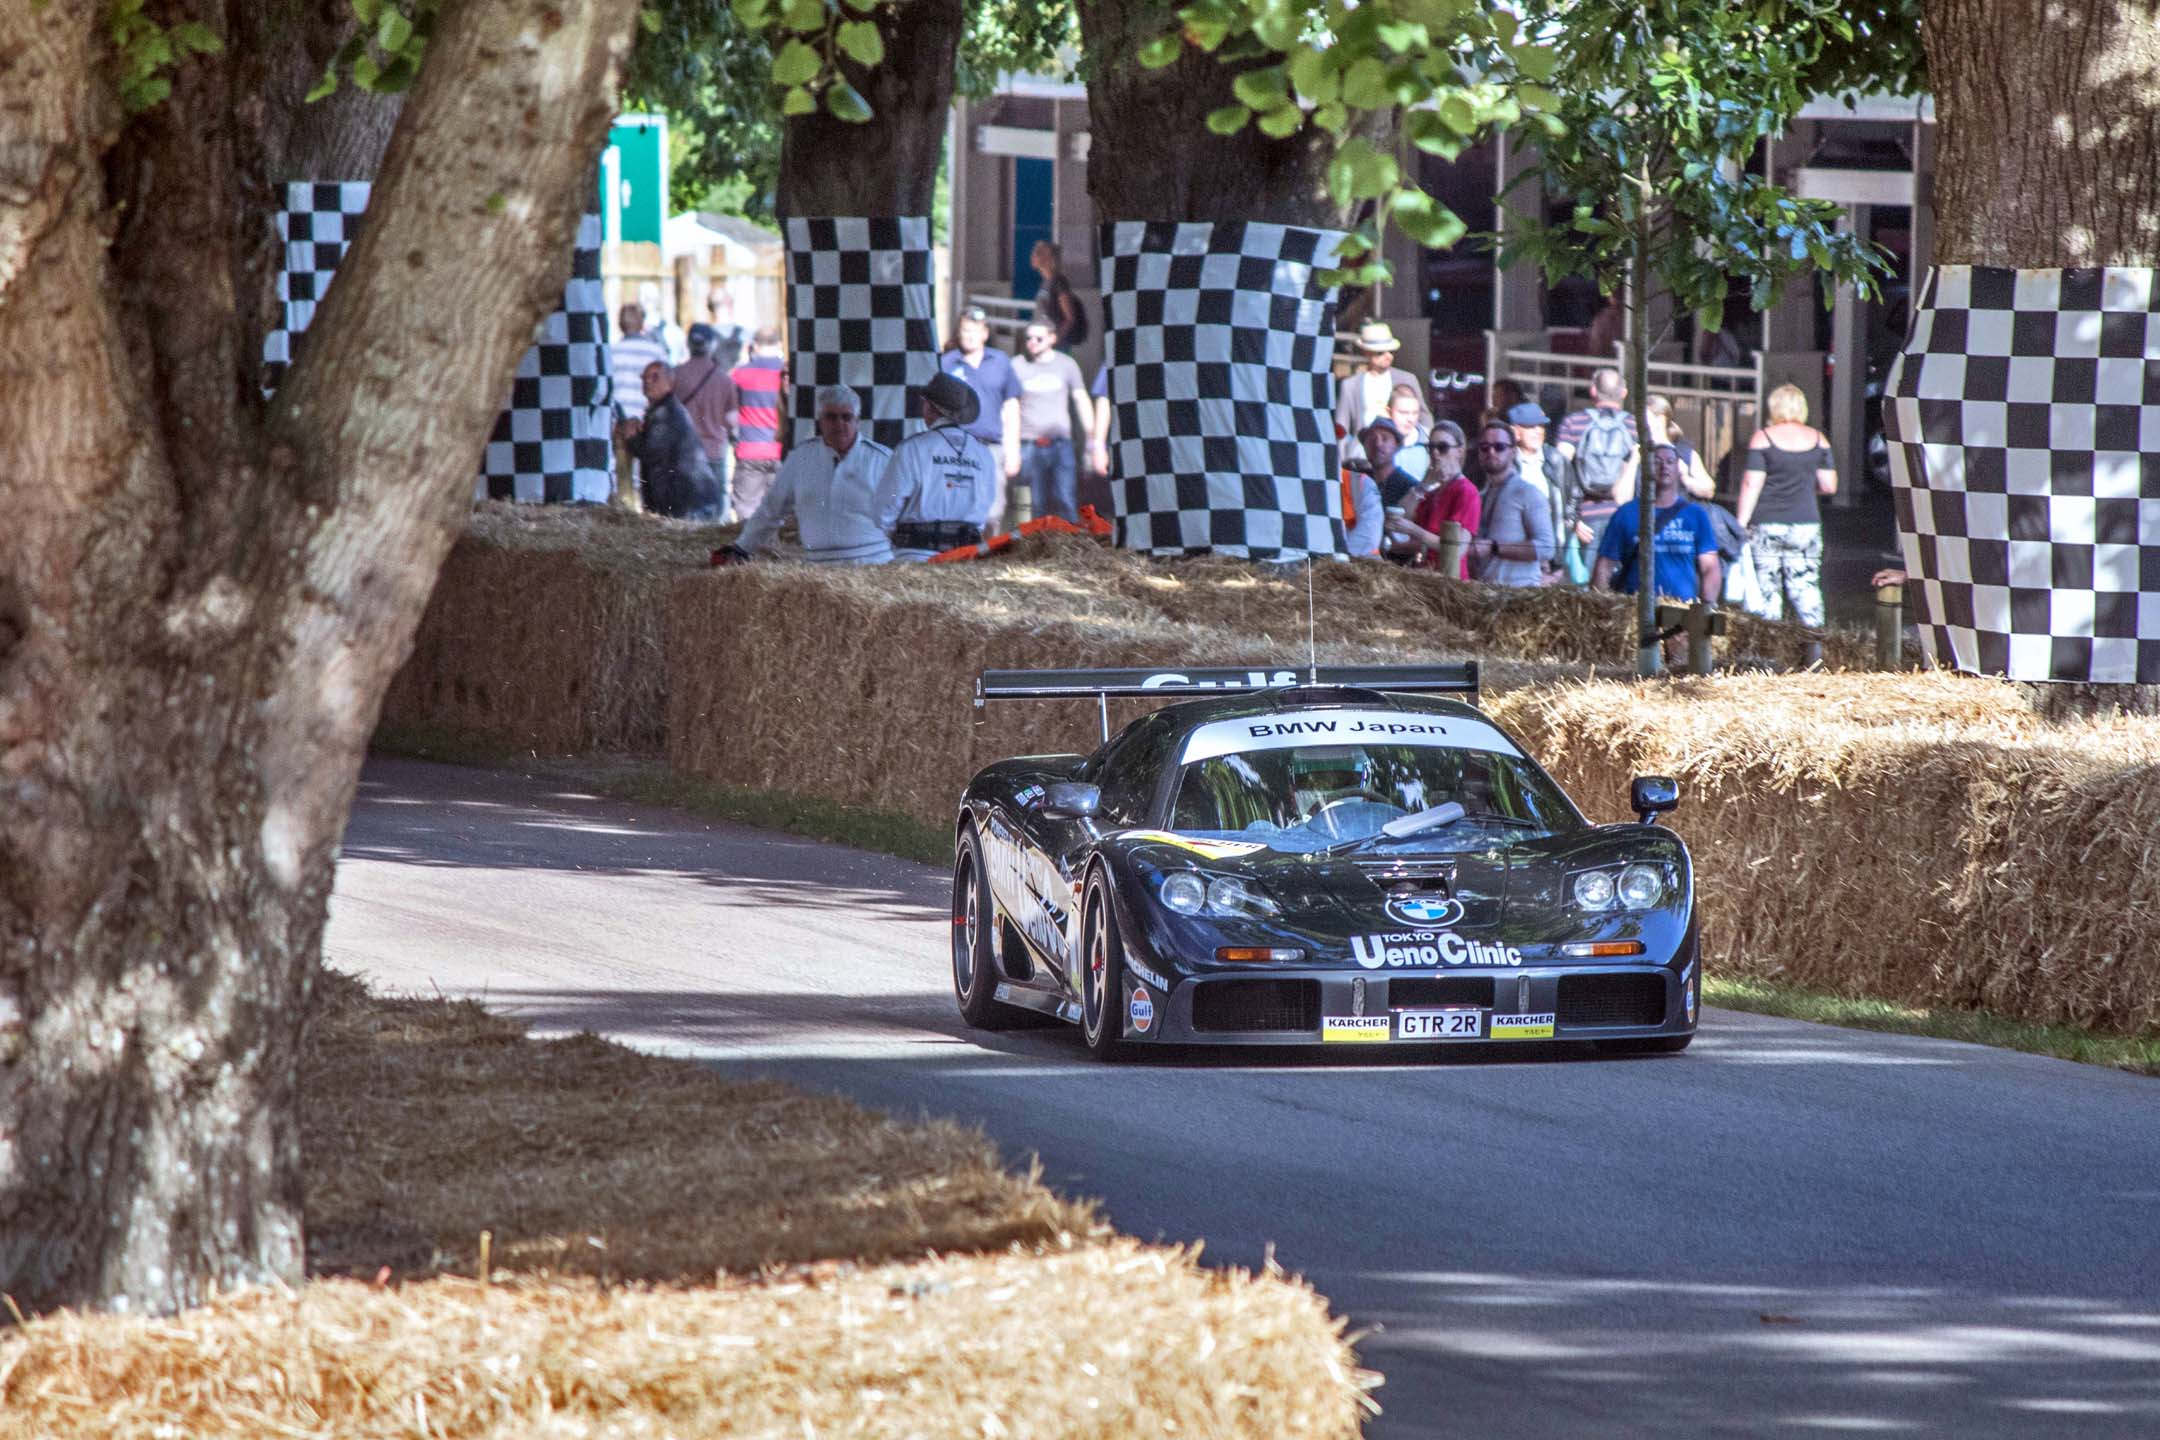 When the McLaren F1 debuted as a road car, it was so fast it ended up beating all the prototypes to win Le Mans over all. Twenty-five years later, it's still an epic machine, and embodies all the best of British spirit that makes Goodwood possible. Tally ho, chaps – onwards to another twenty-five years of speed.